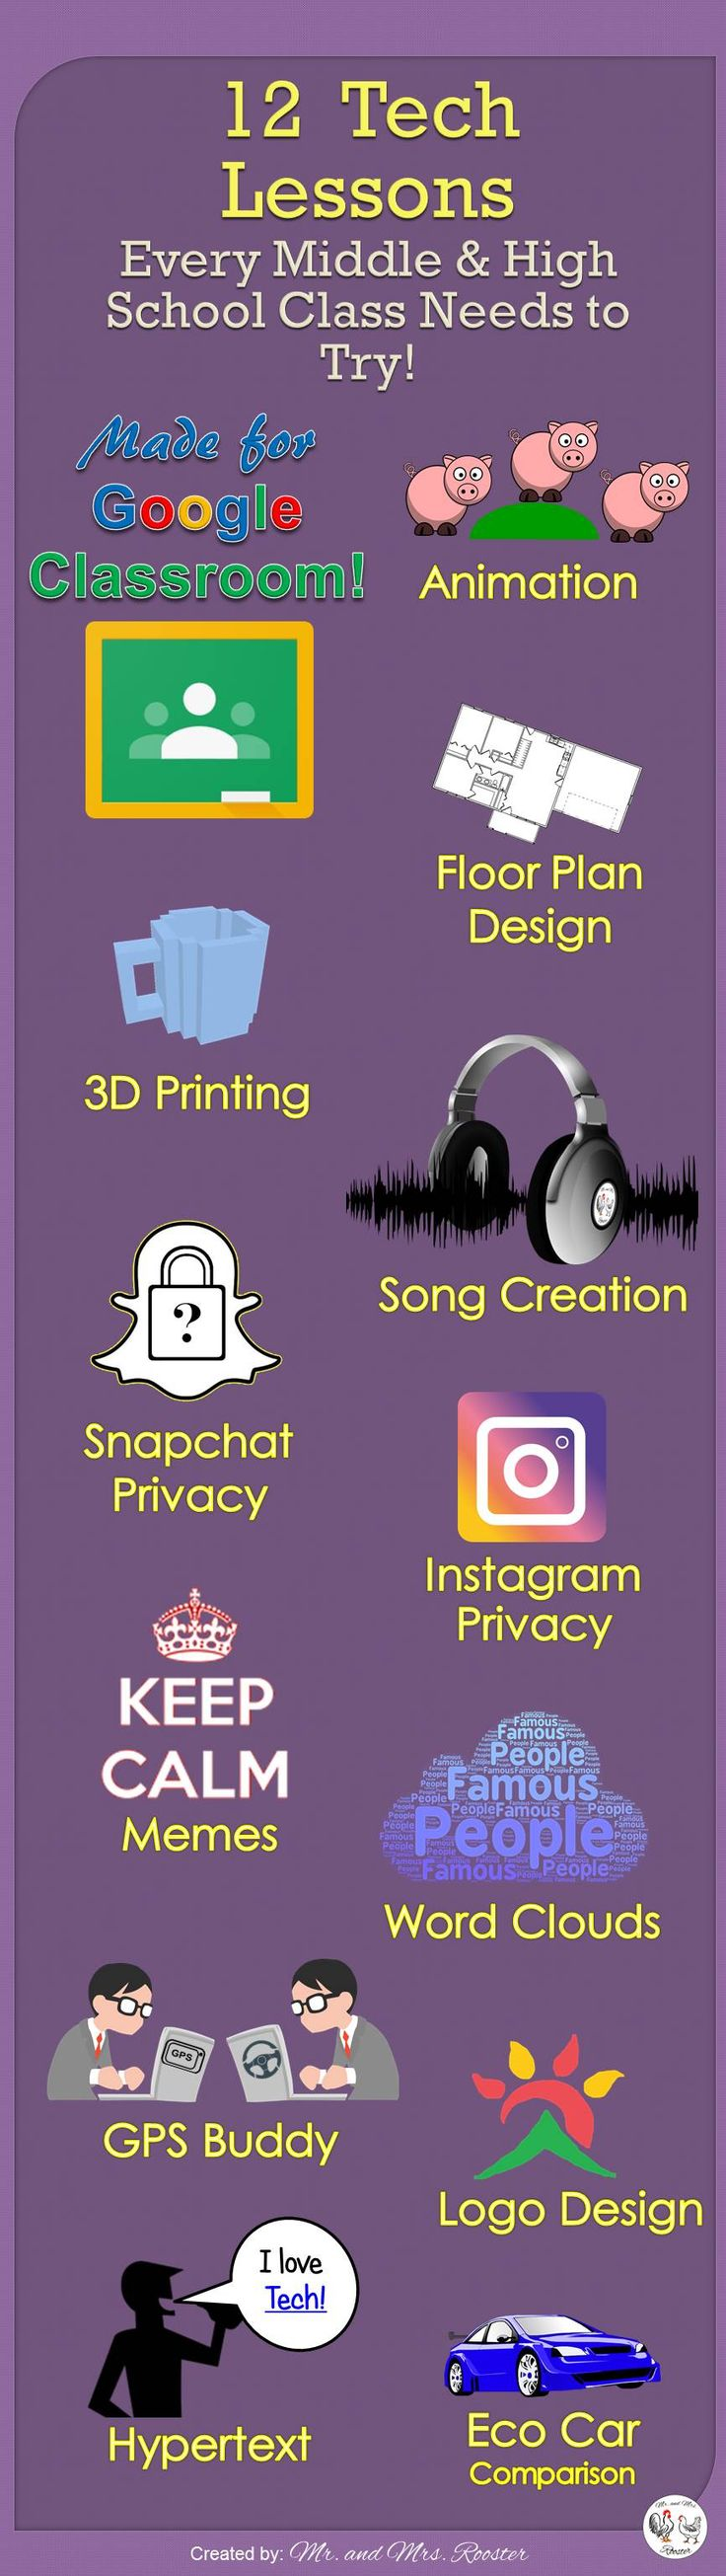 "Designed for Google Classroom...These technology lessons cover relevant topics that students love: designing their own home, Snapchat's ""privacy"" policy, logo design, animation, eco cars, song creation, design 3D objects, word clouds, create custom memes,"